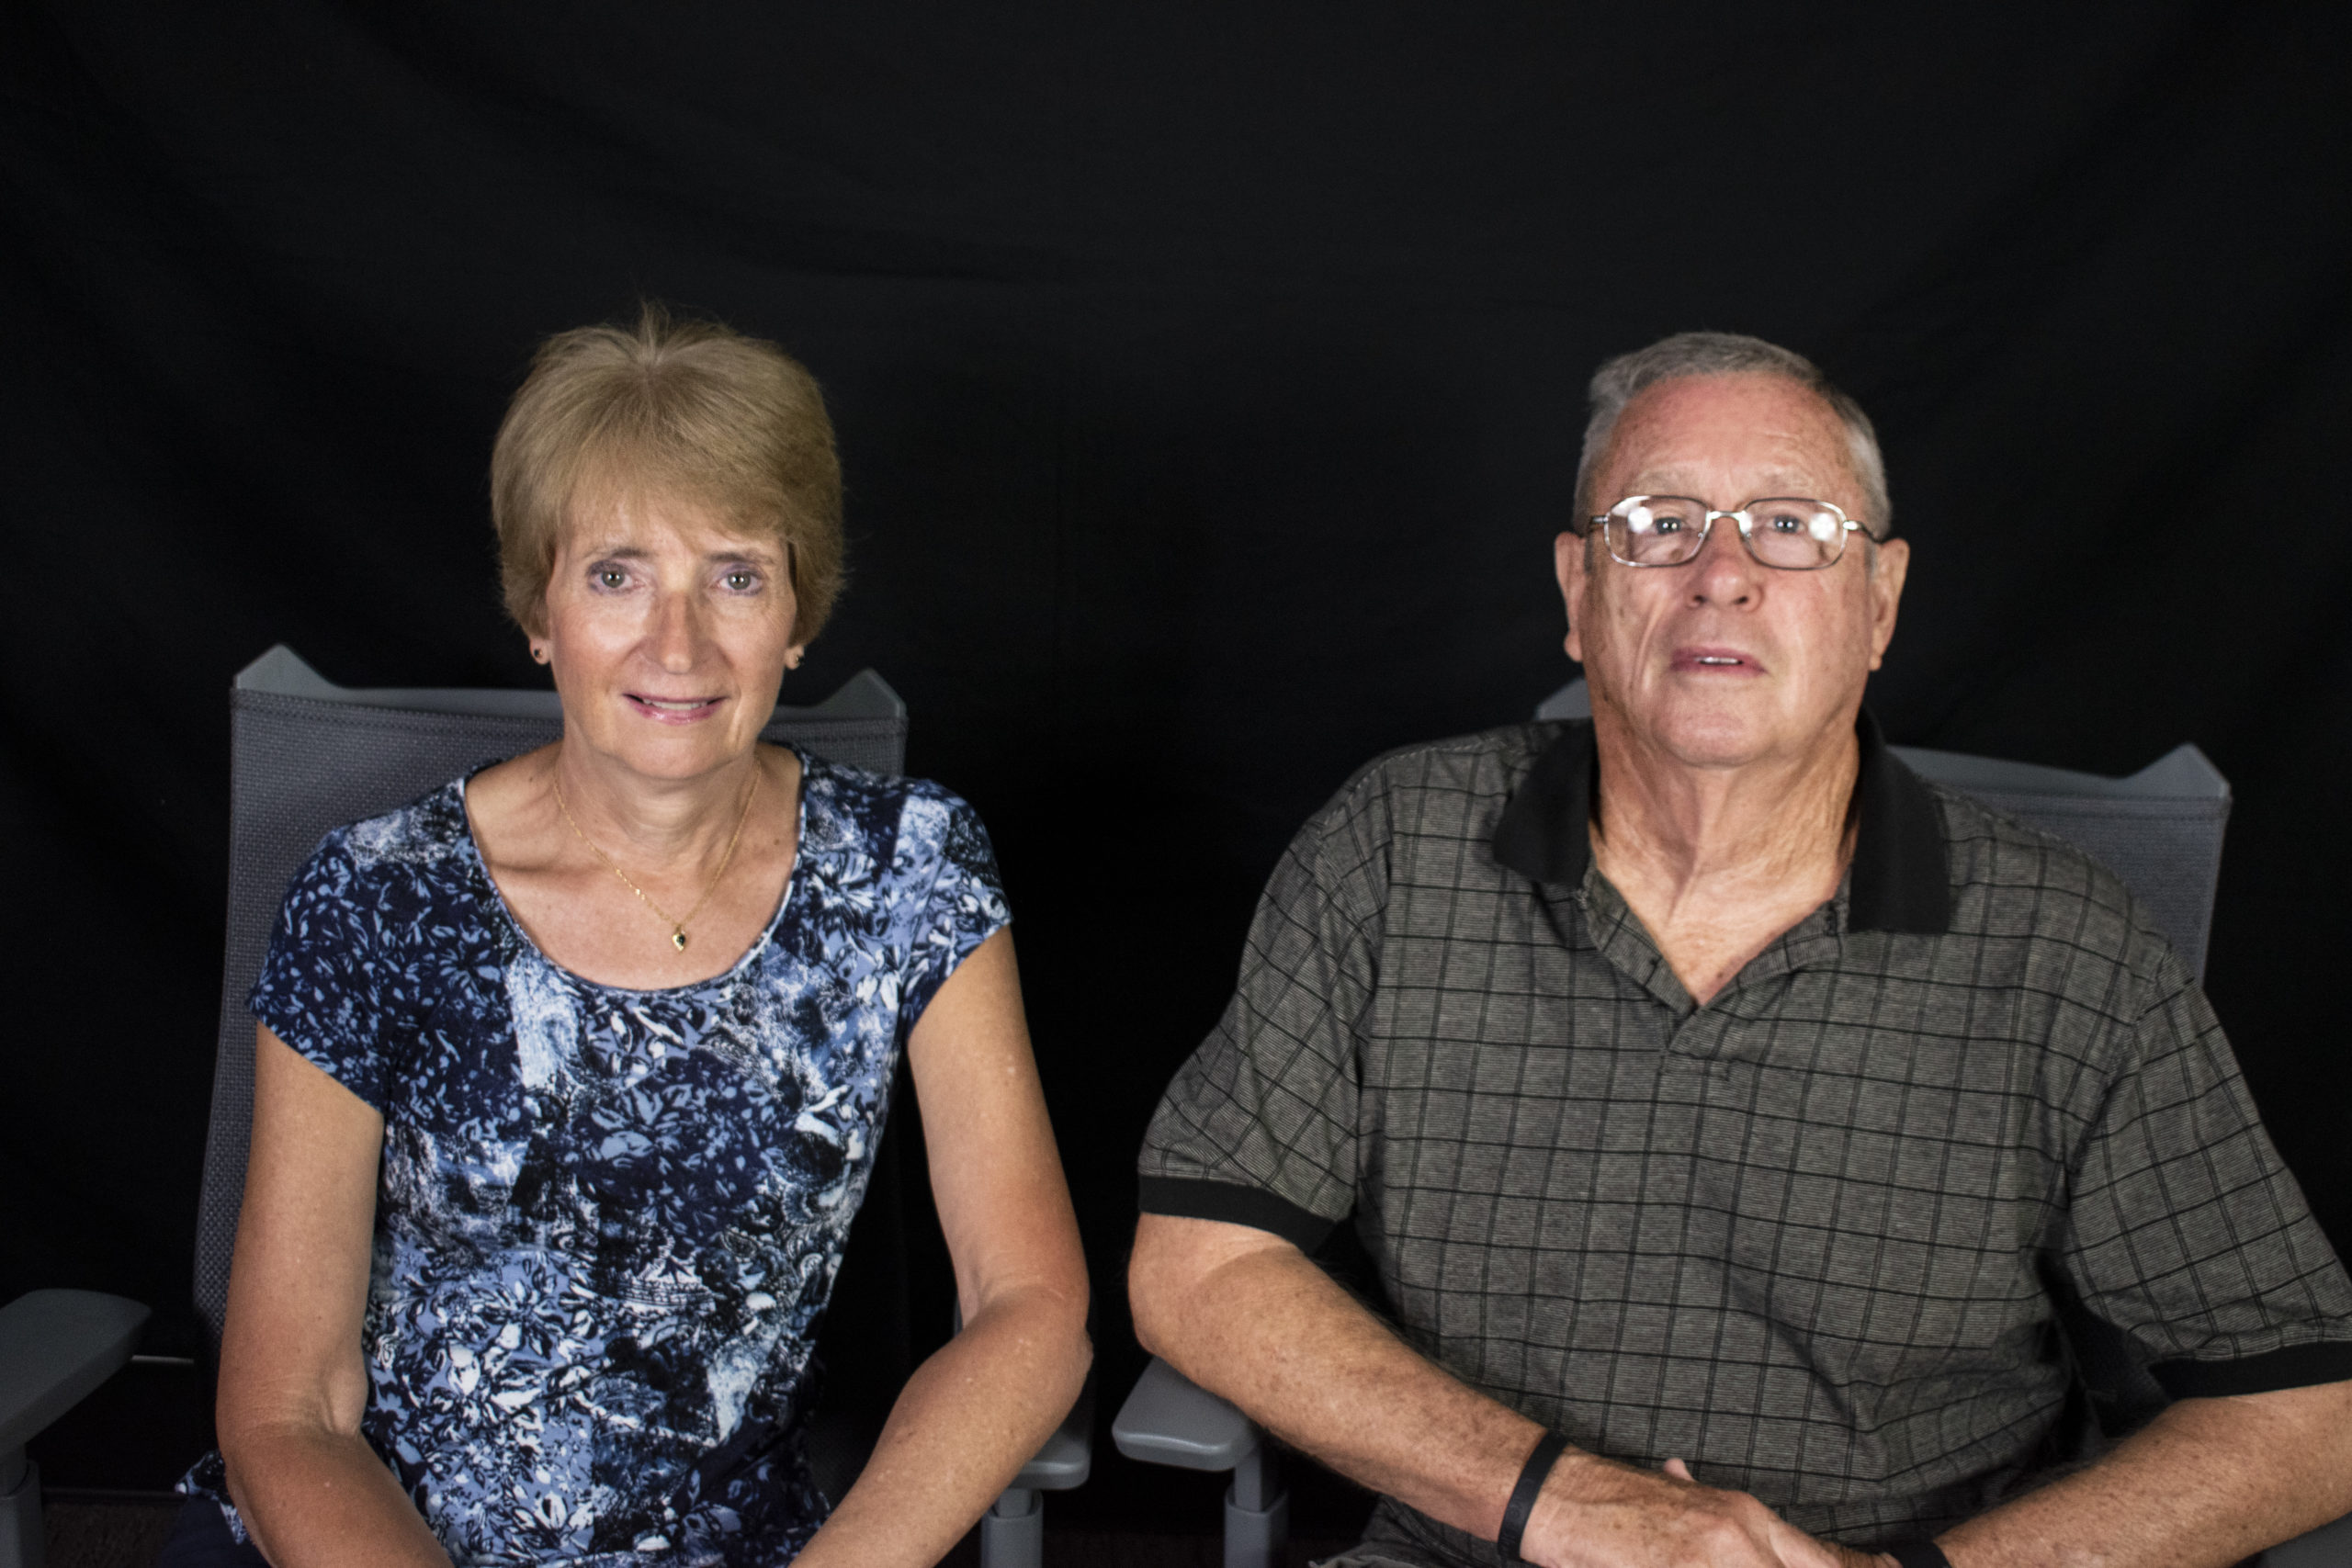 a photo of a man and a woman sitting down and smiling